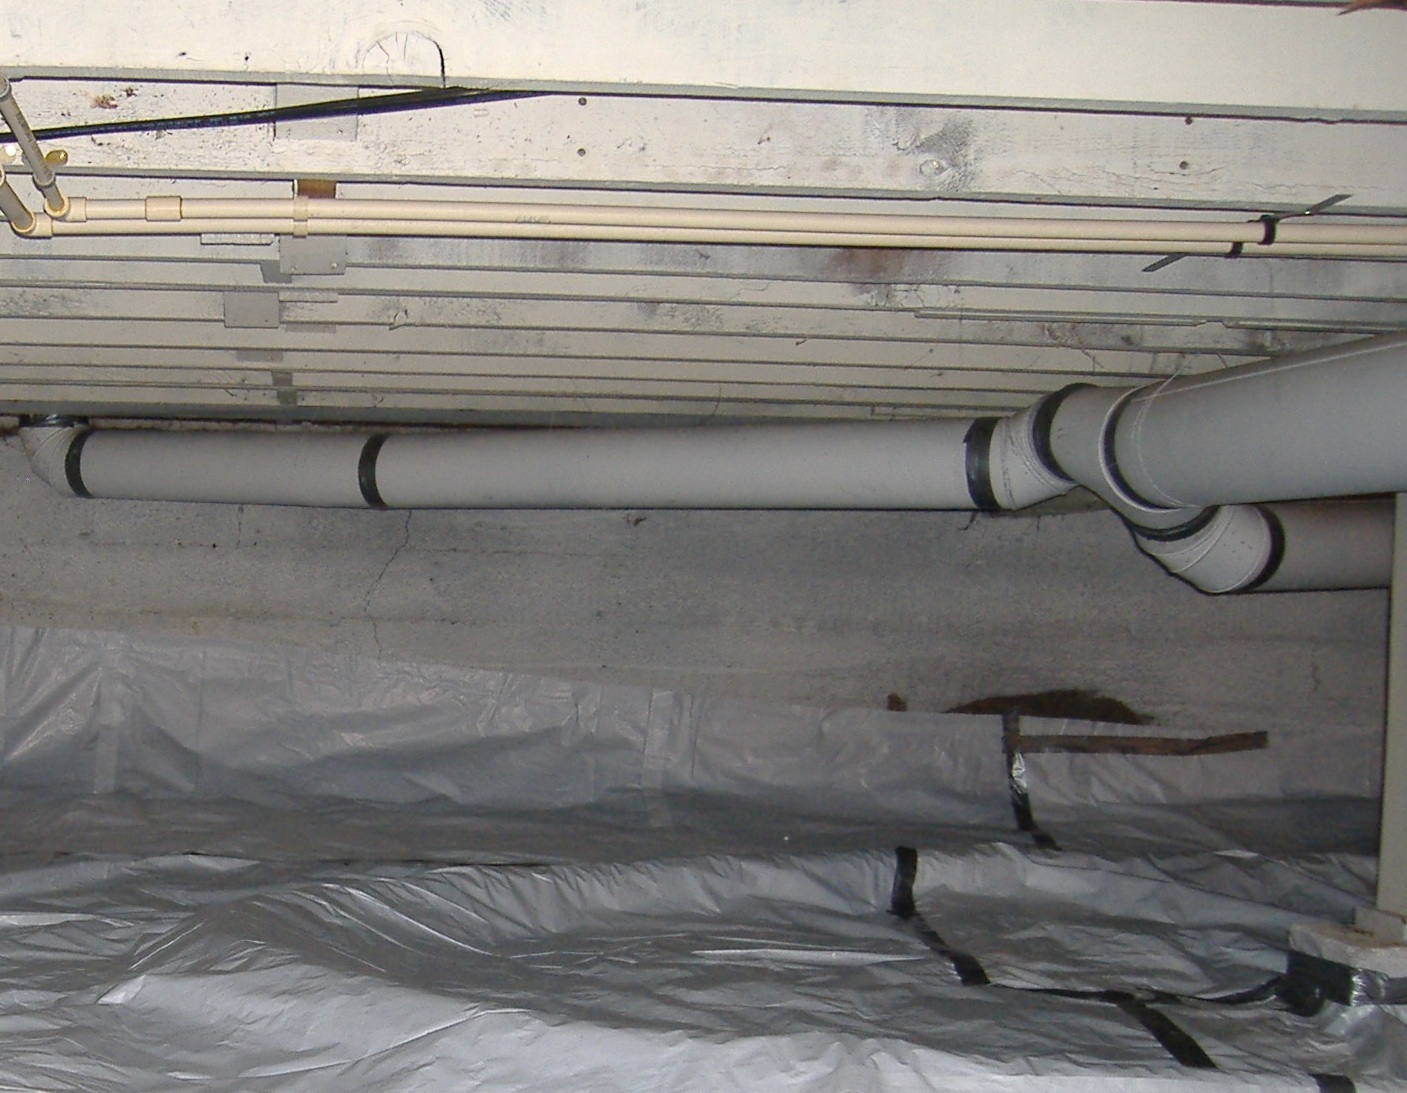 Systems can be installed in basements or crawlspaces.